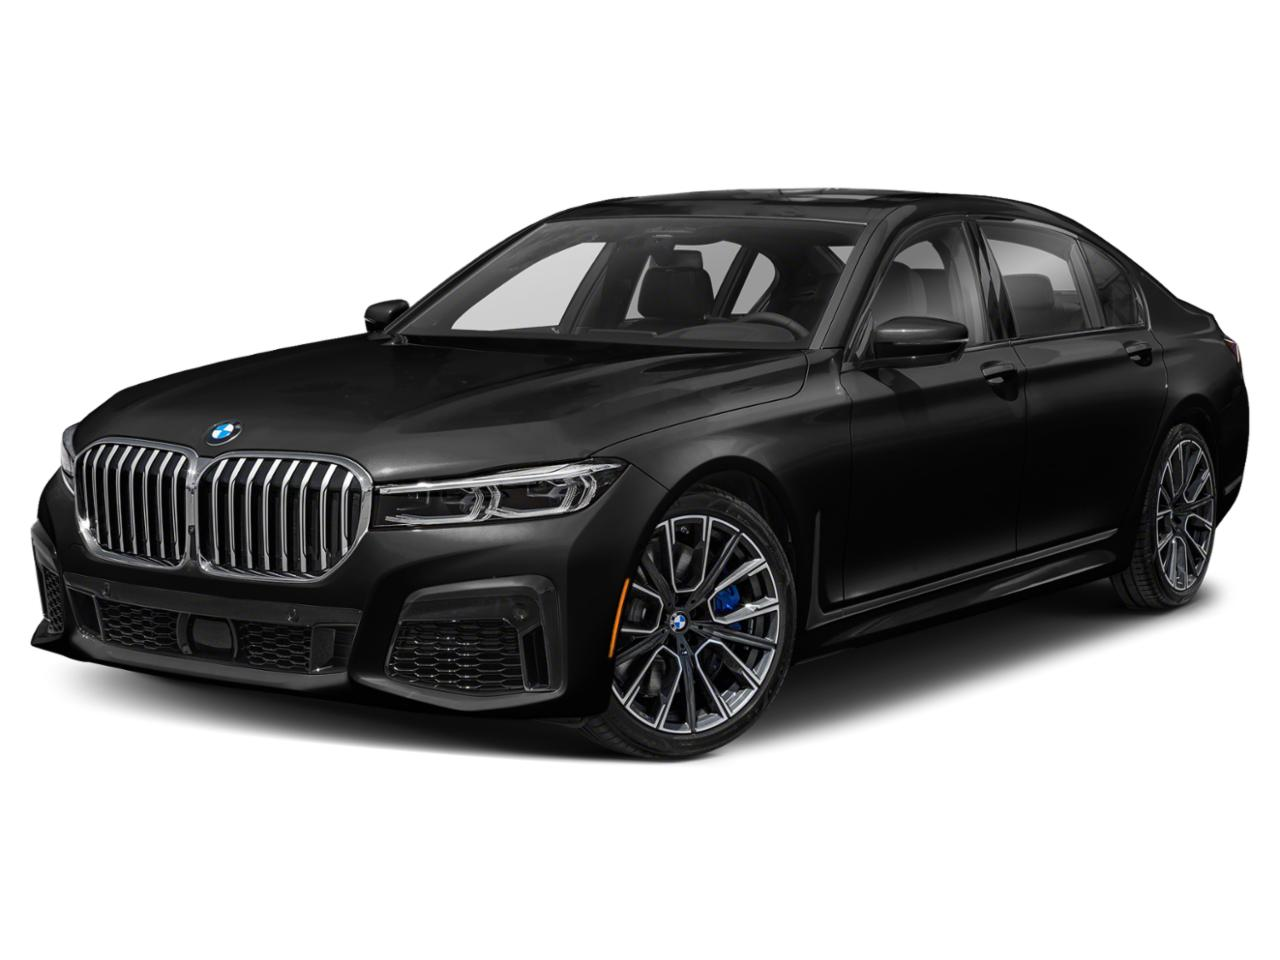 2021 BMW 750i xDrive Vehicle Photo in Grapevine, TX 76051